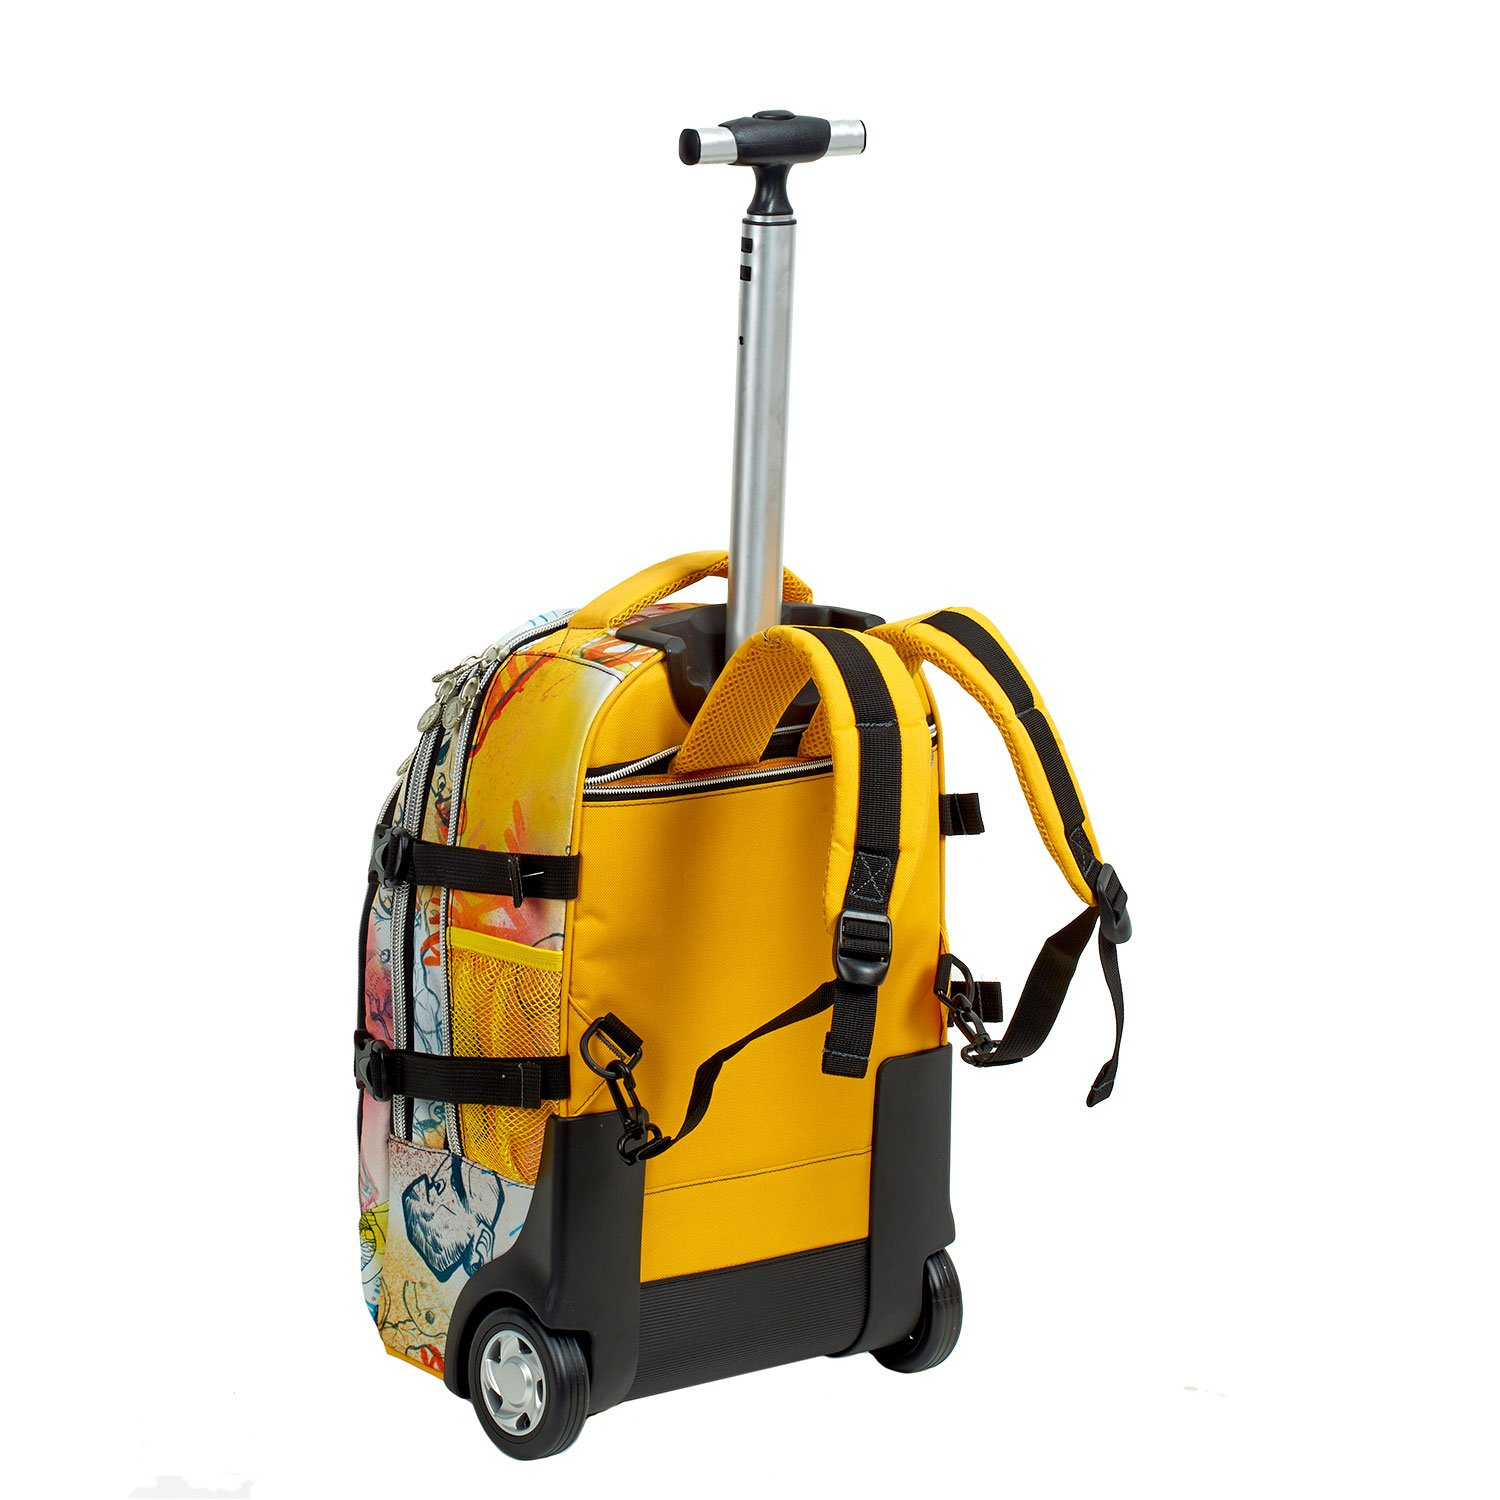 / Trolley Rucksack with Wheels pro-dg 49675/